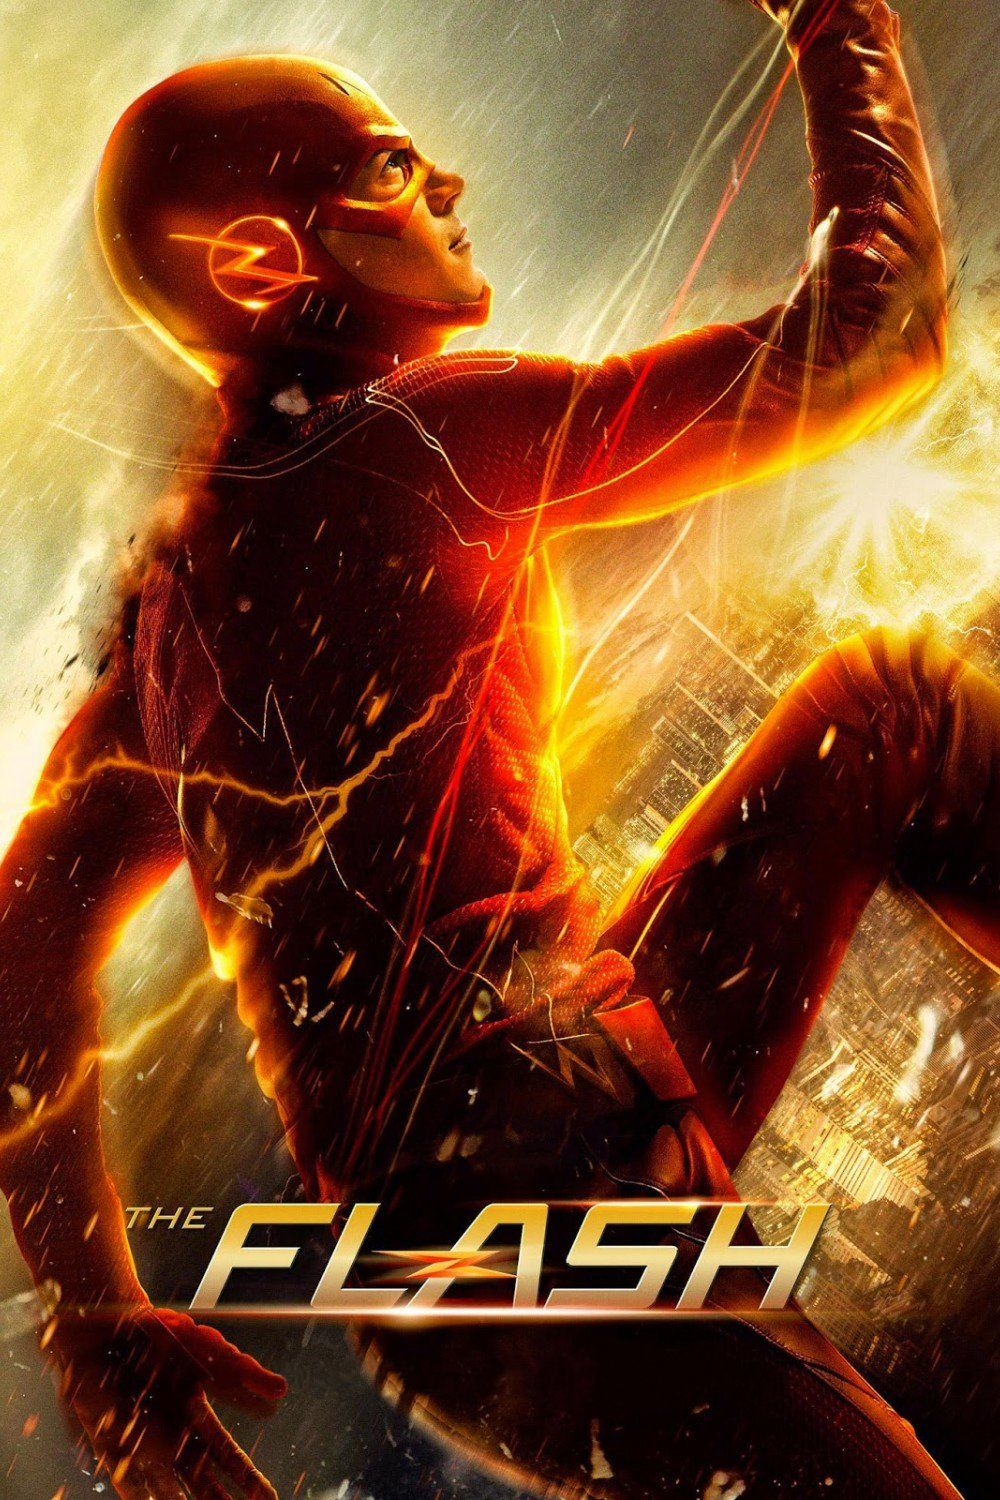 The Flash Poster 30+ Printable Posters (Free Download) en